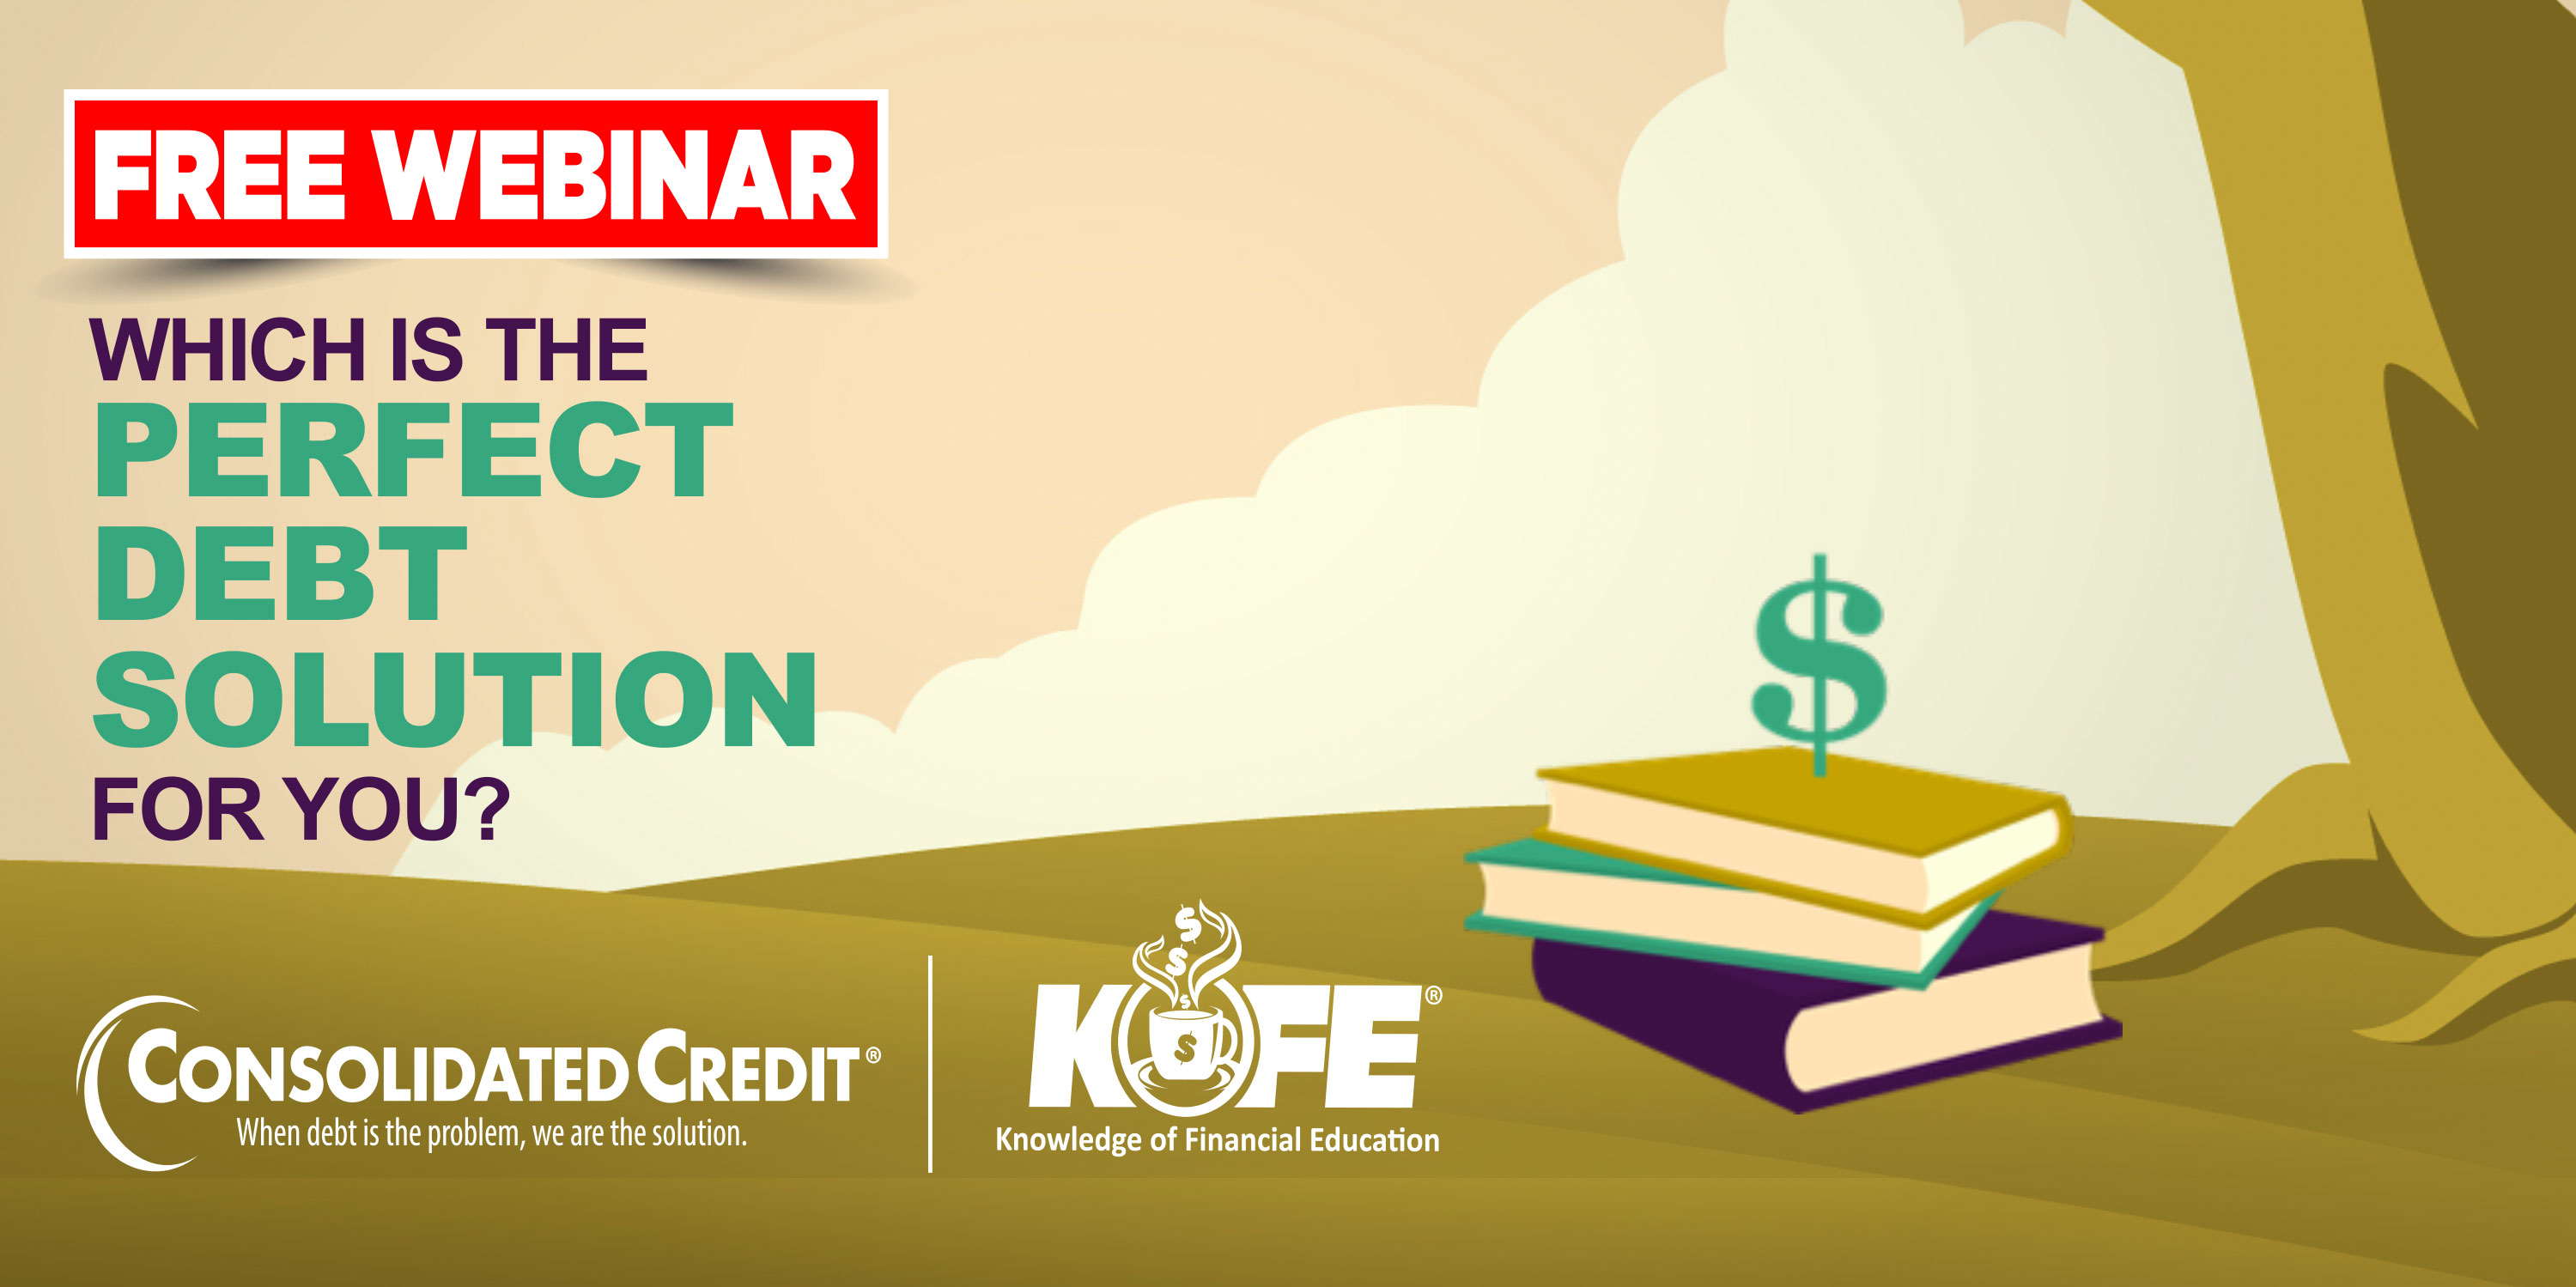 https://www.consolidatedcredit.org/wp-content/uploads/2020/07/Aug-20-Perfect-Debt-Solution-CC-Kofe-Webinar_3000x1499_2020.jpg